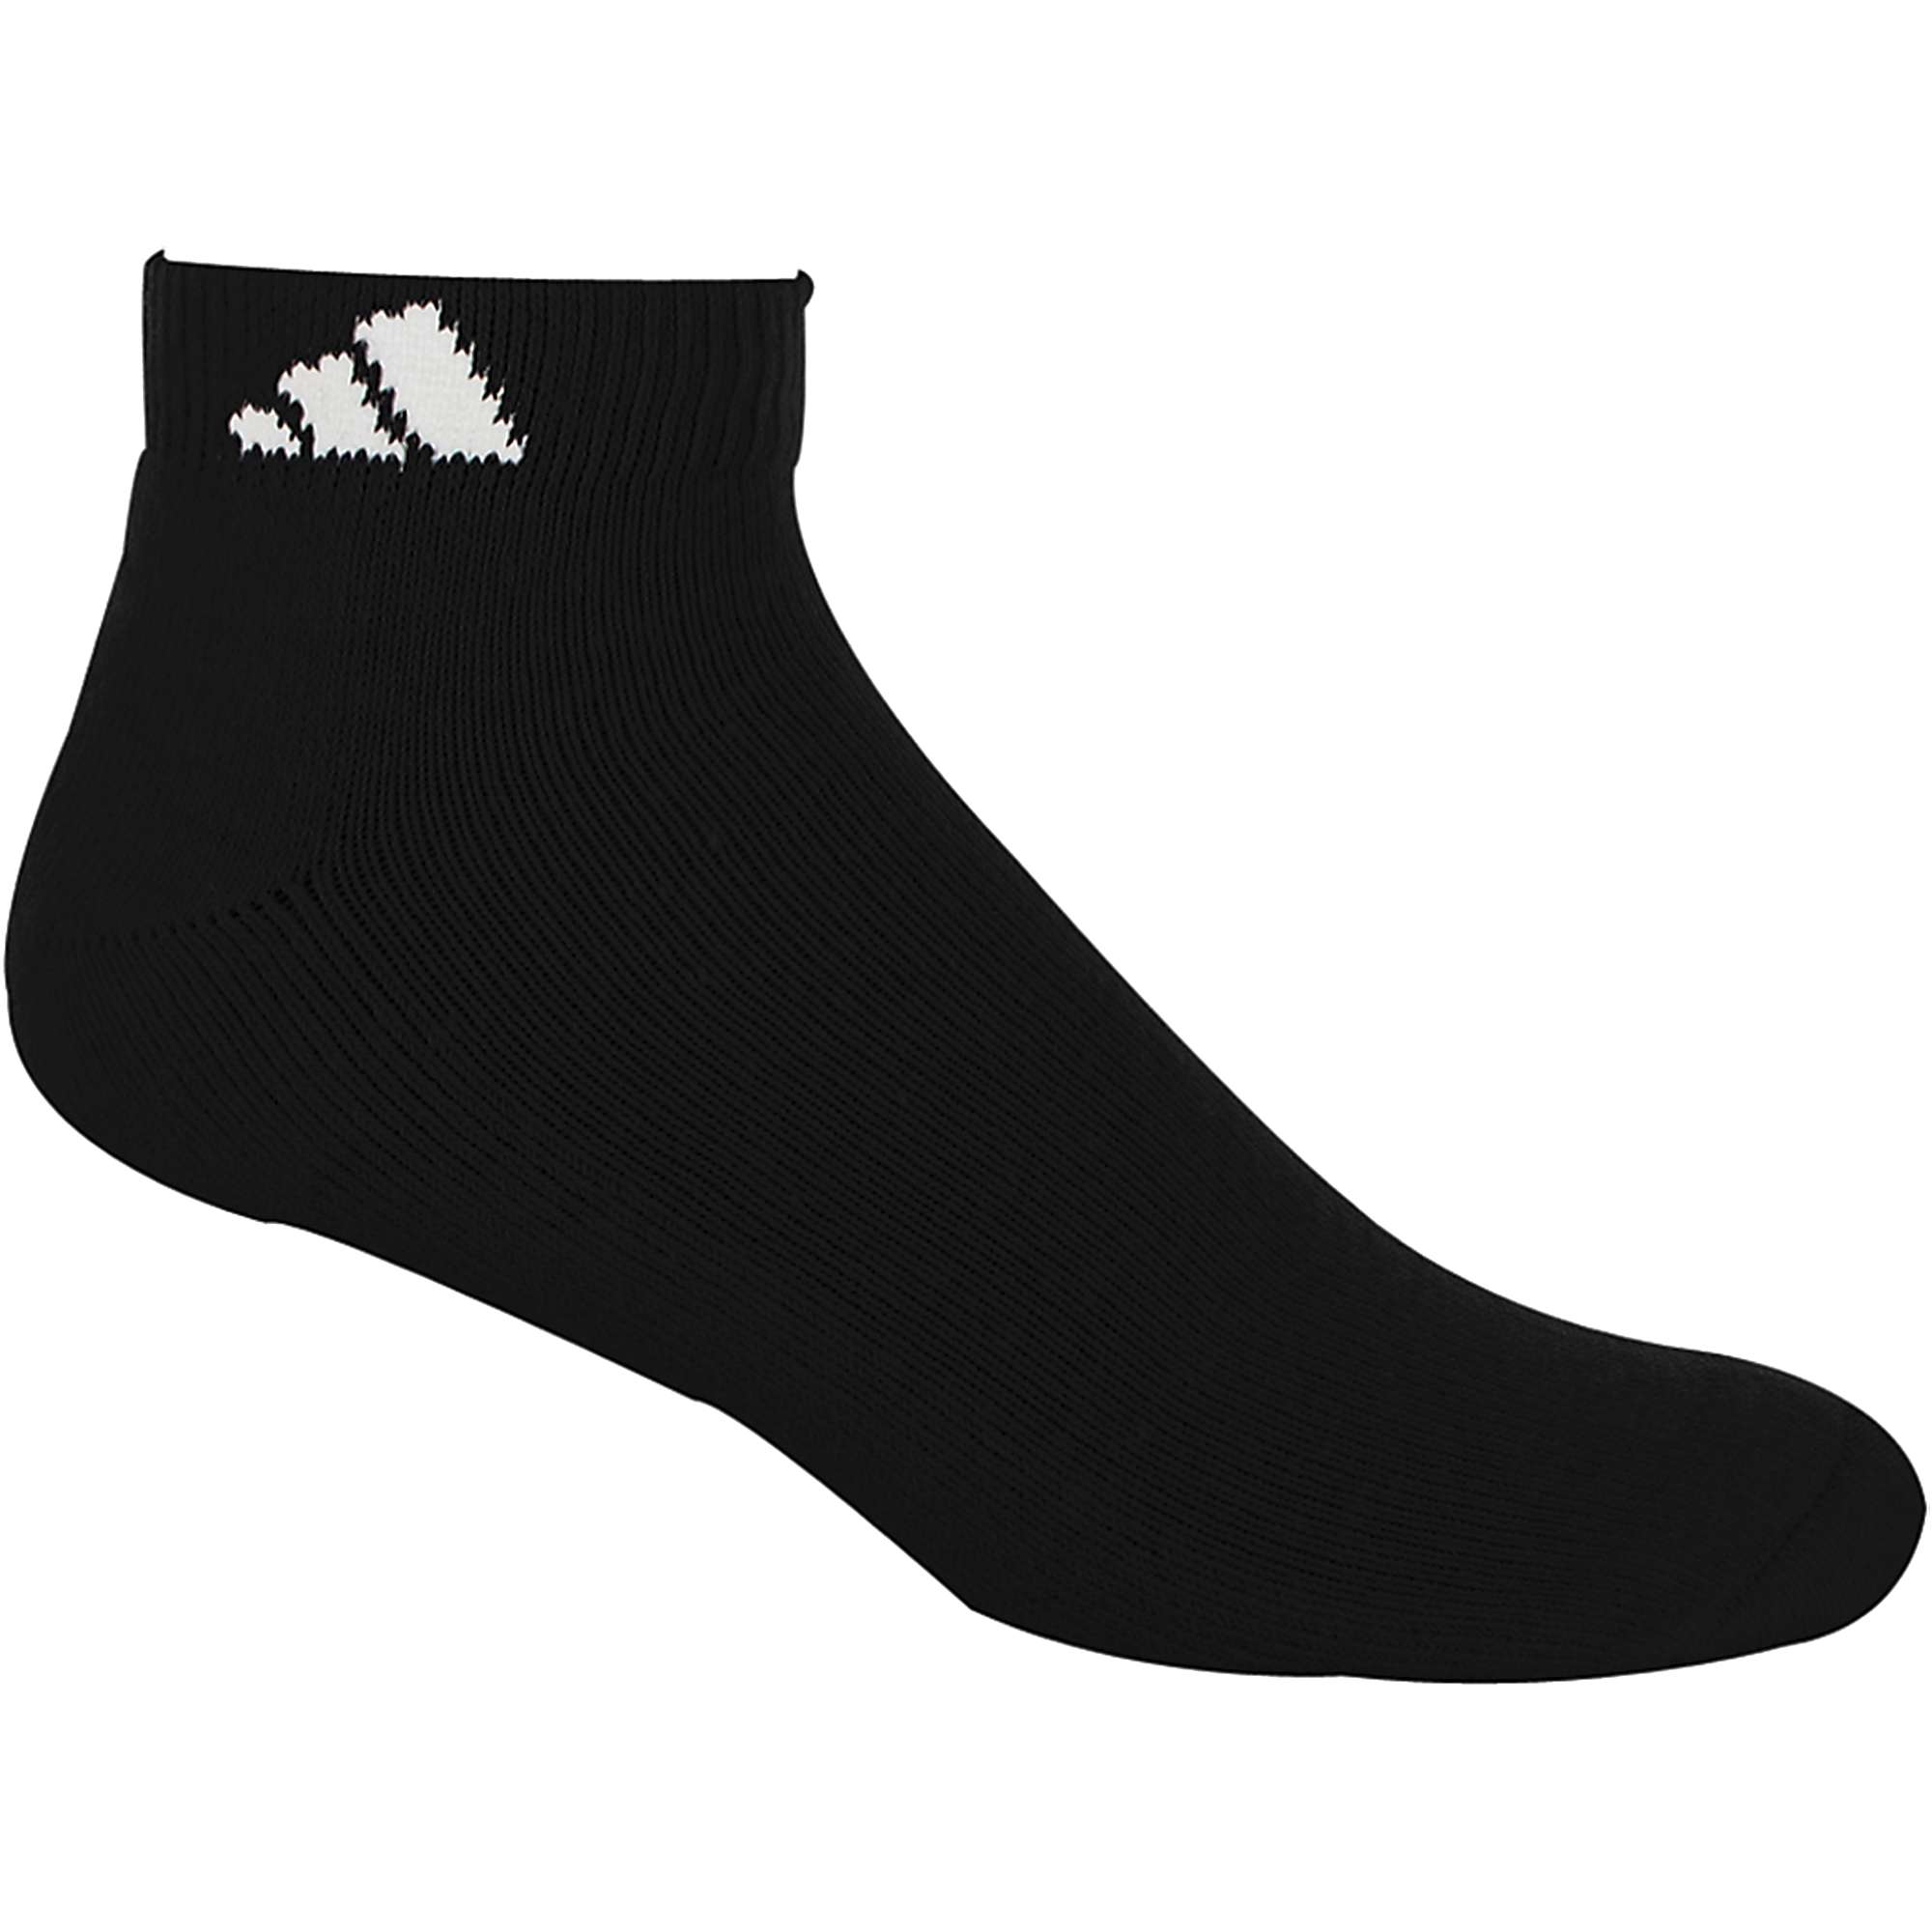 Adidas Women's Low Cut Socks